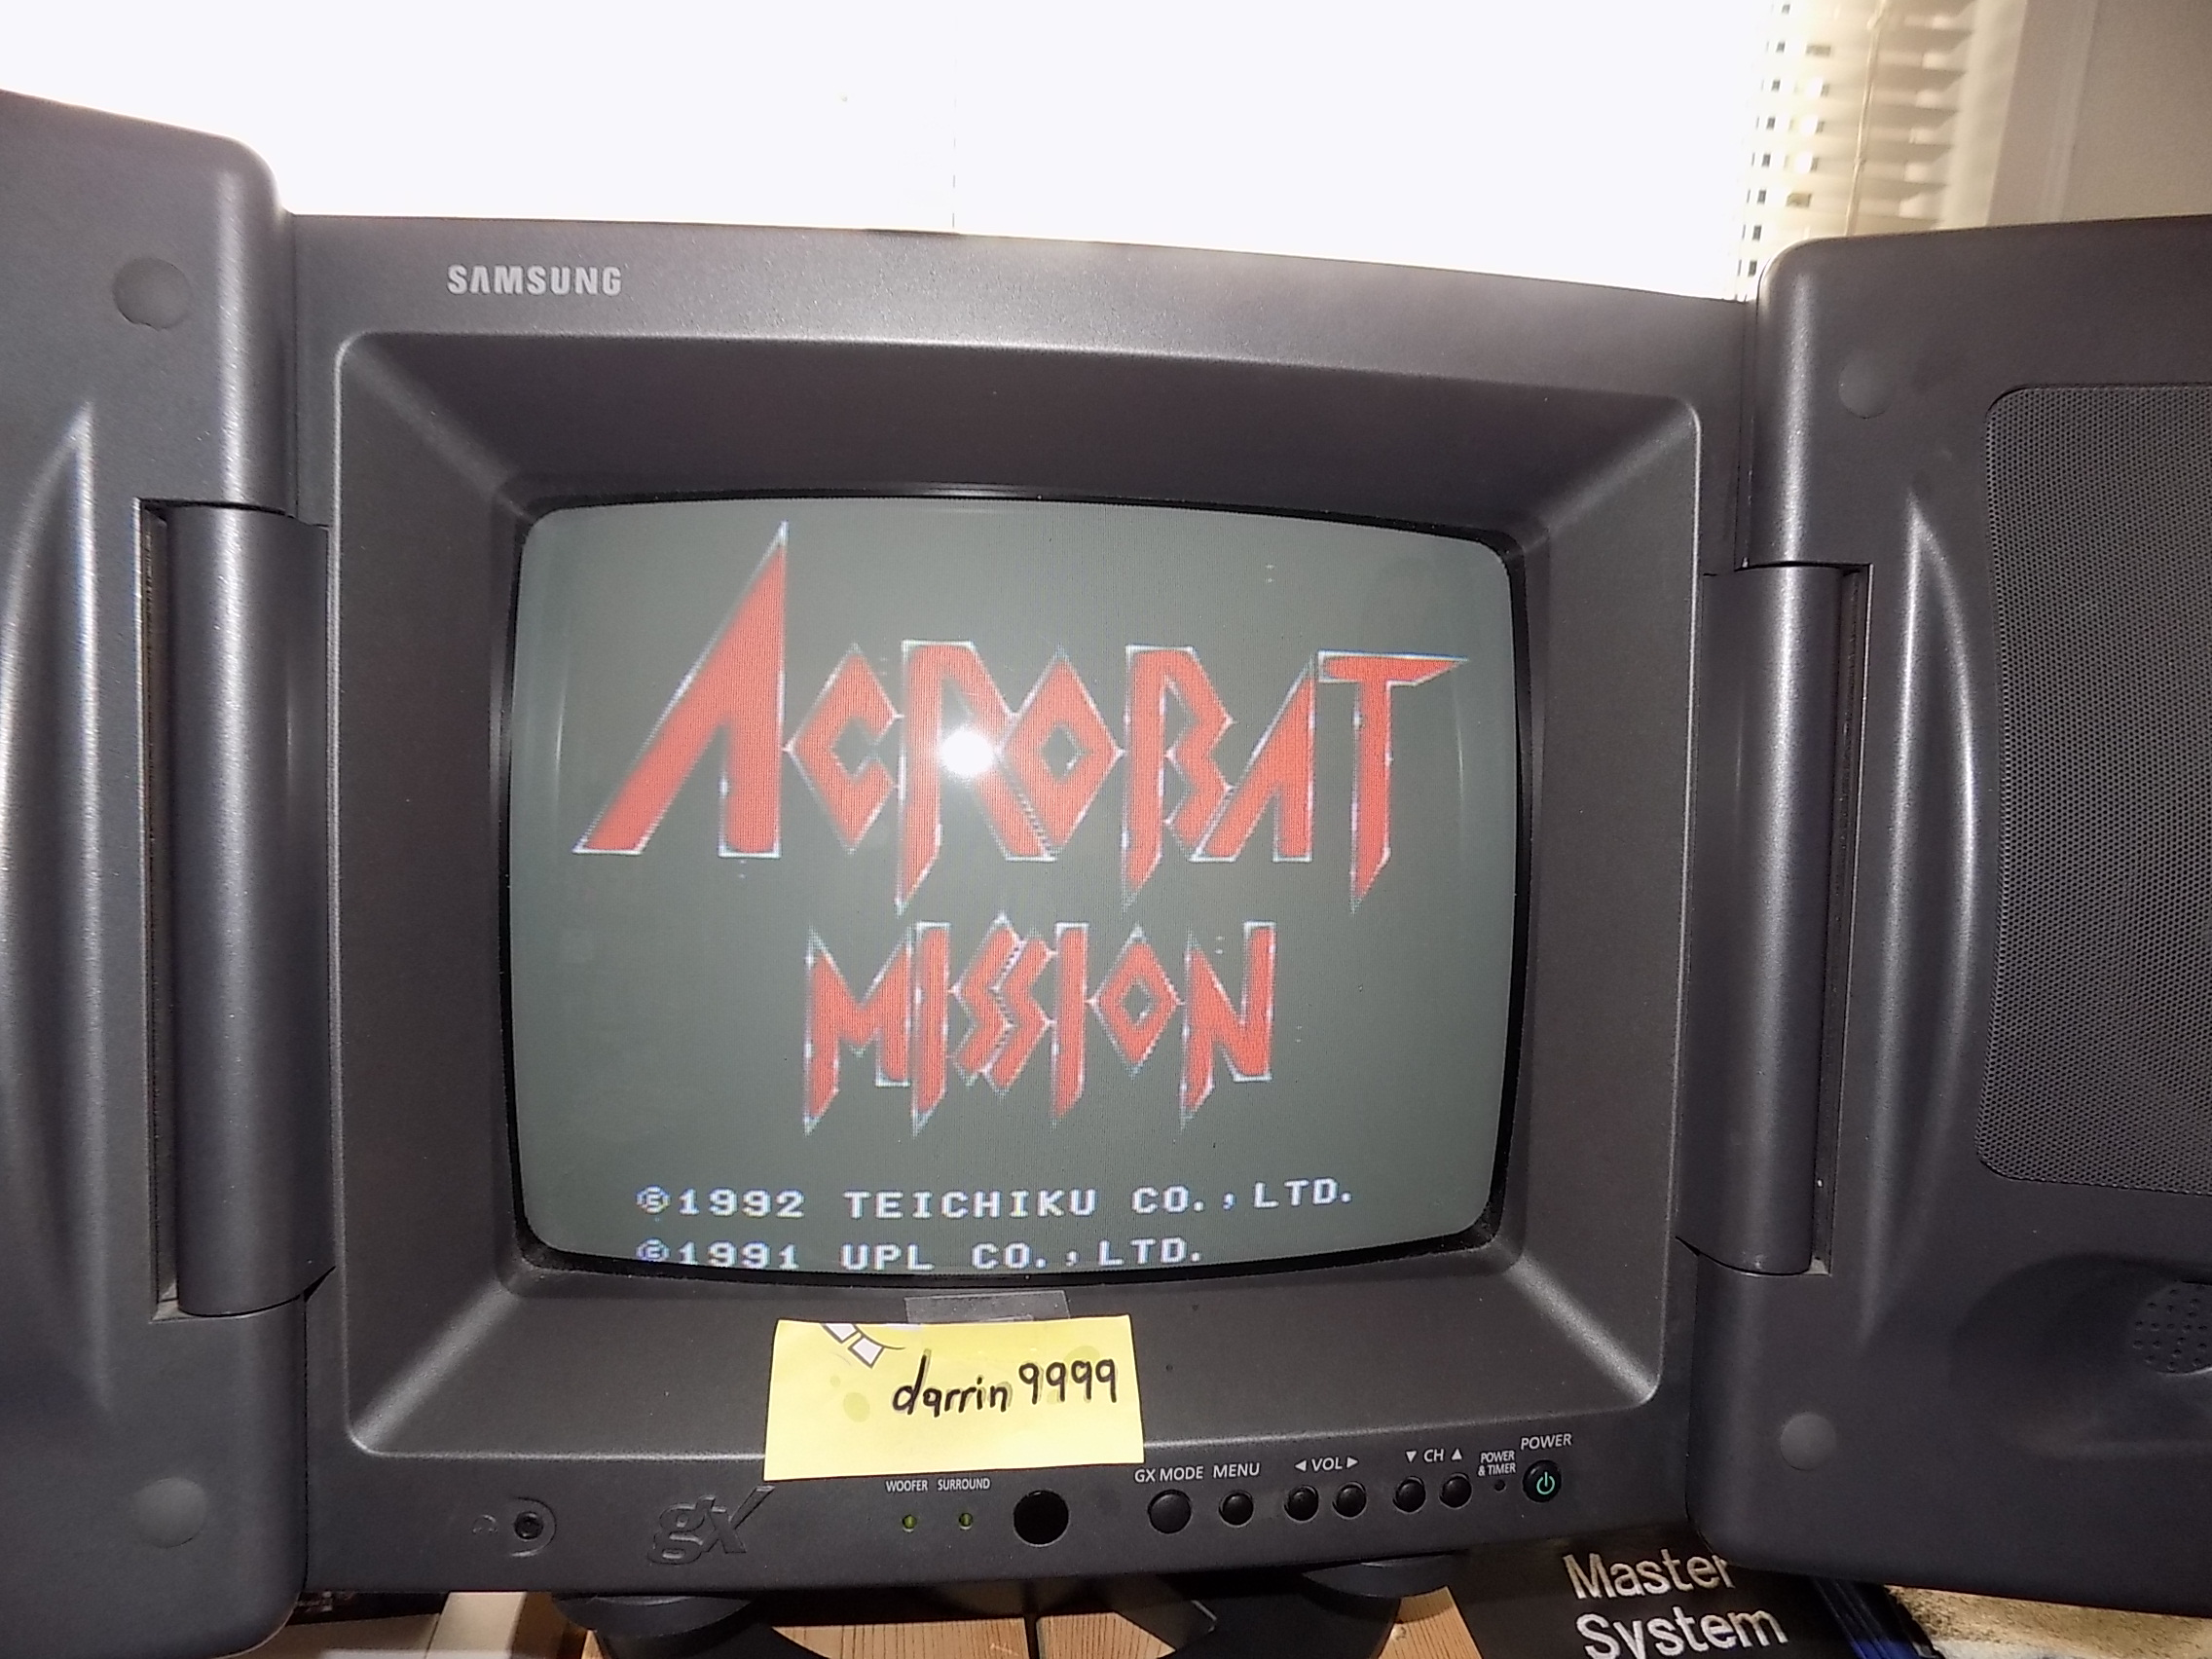 darrin9999: Acrobat Mission [Normal] (SNES/Super Famicom) 64,000 points on 2019-04-07 10:50:16